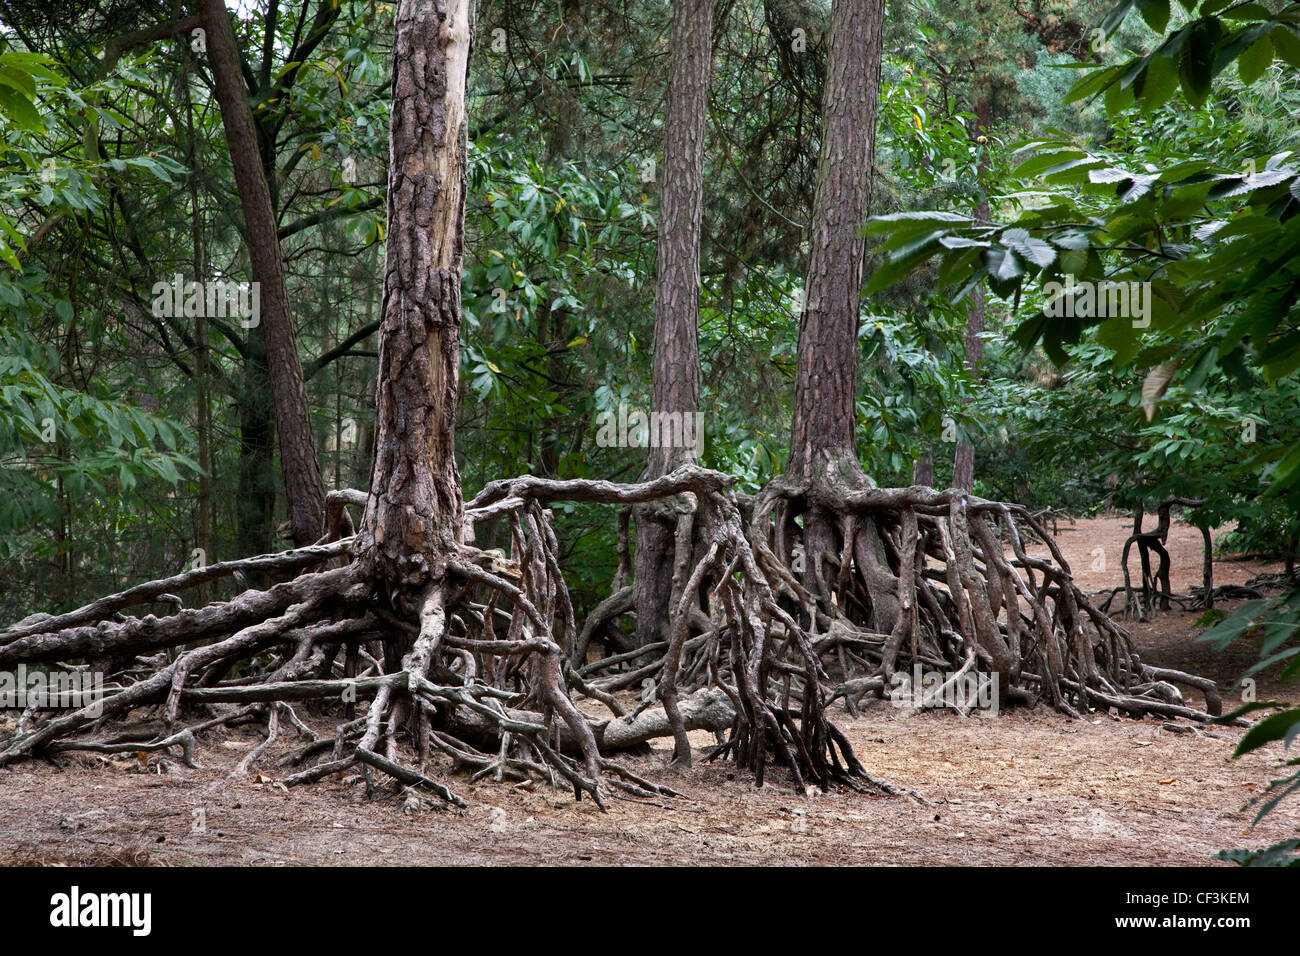 Exposed roots of Scots Pine (Pinus sylvestris) due to soil erosion in forest at Kasterlee, Belgium - Stock Image